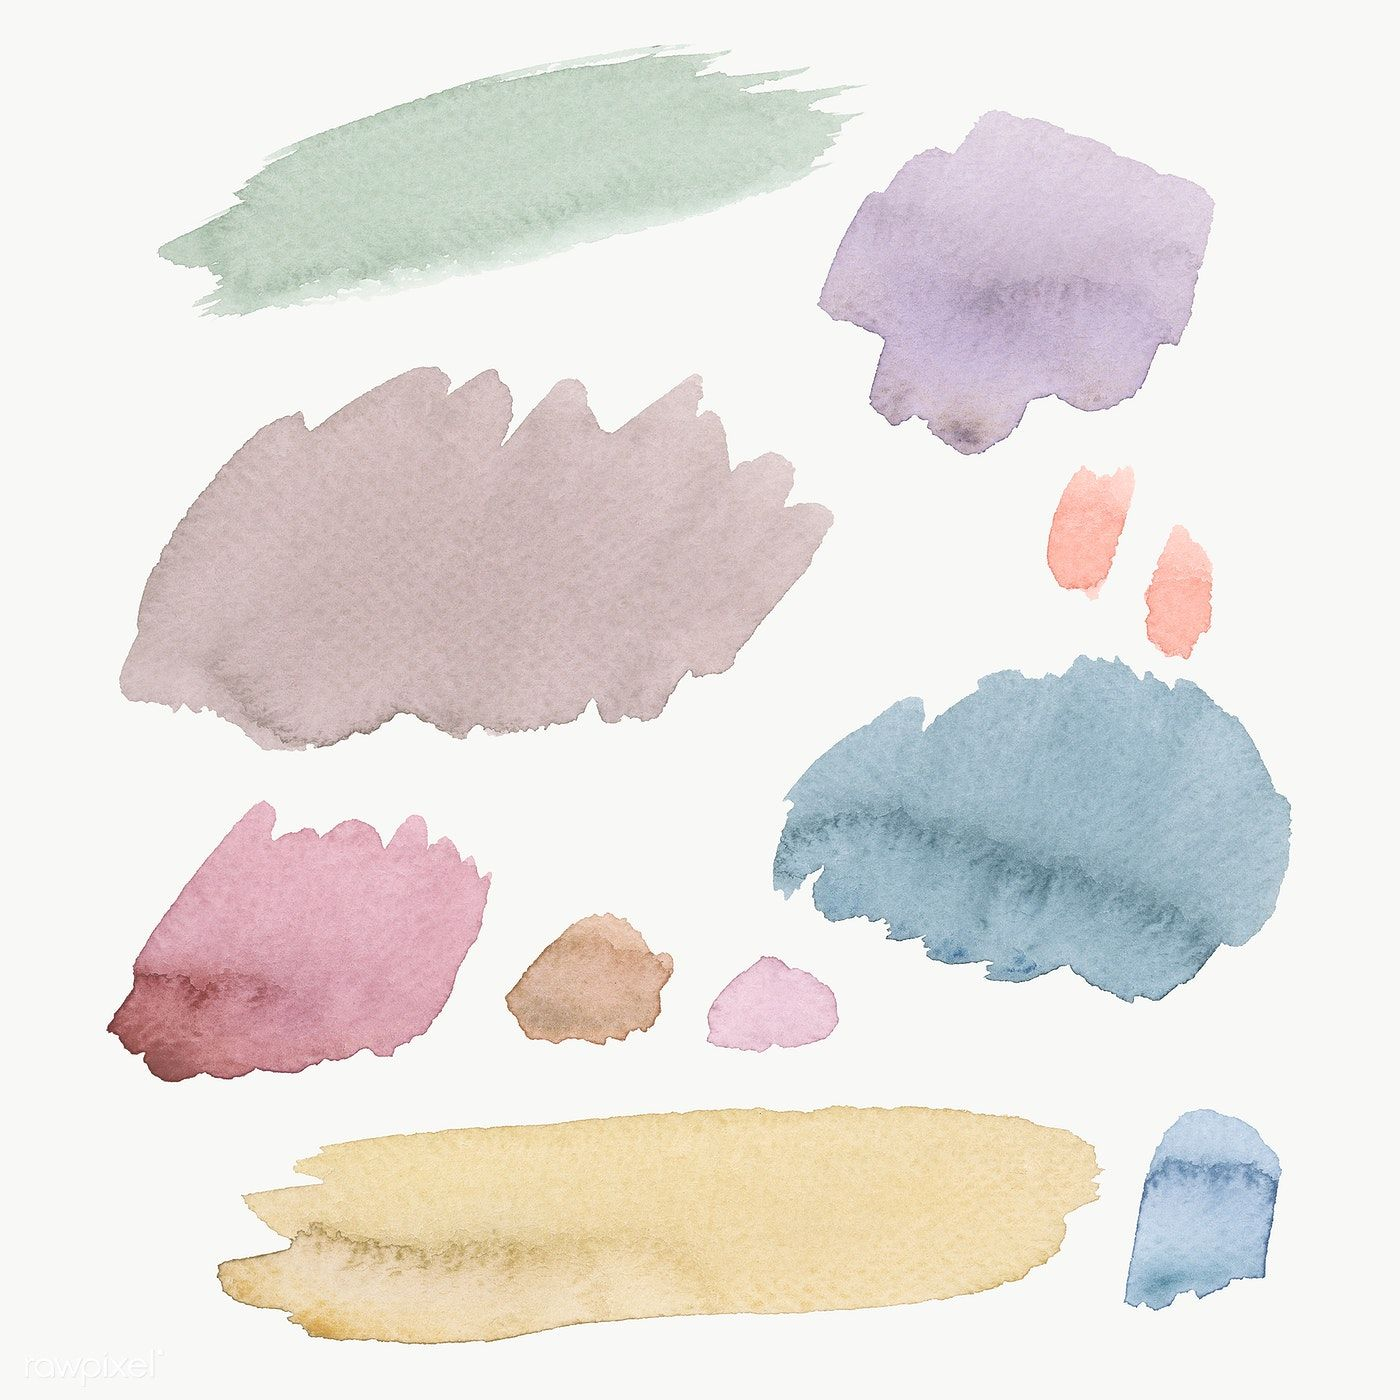 Colorful Watercolor Brush Strokes Transparent Png Free Image By